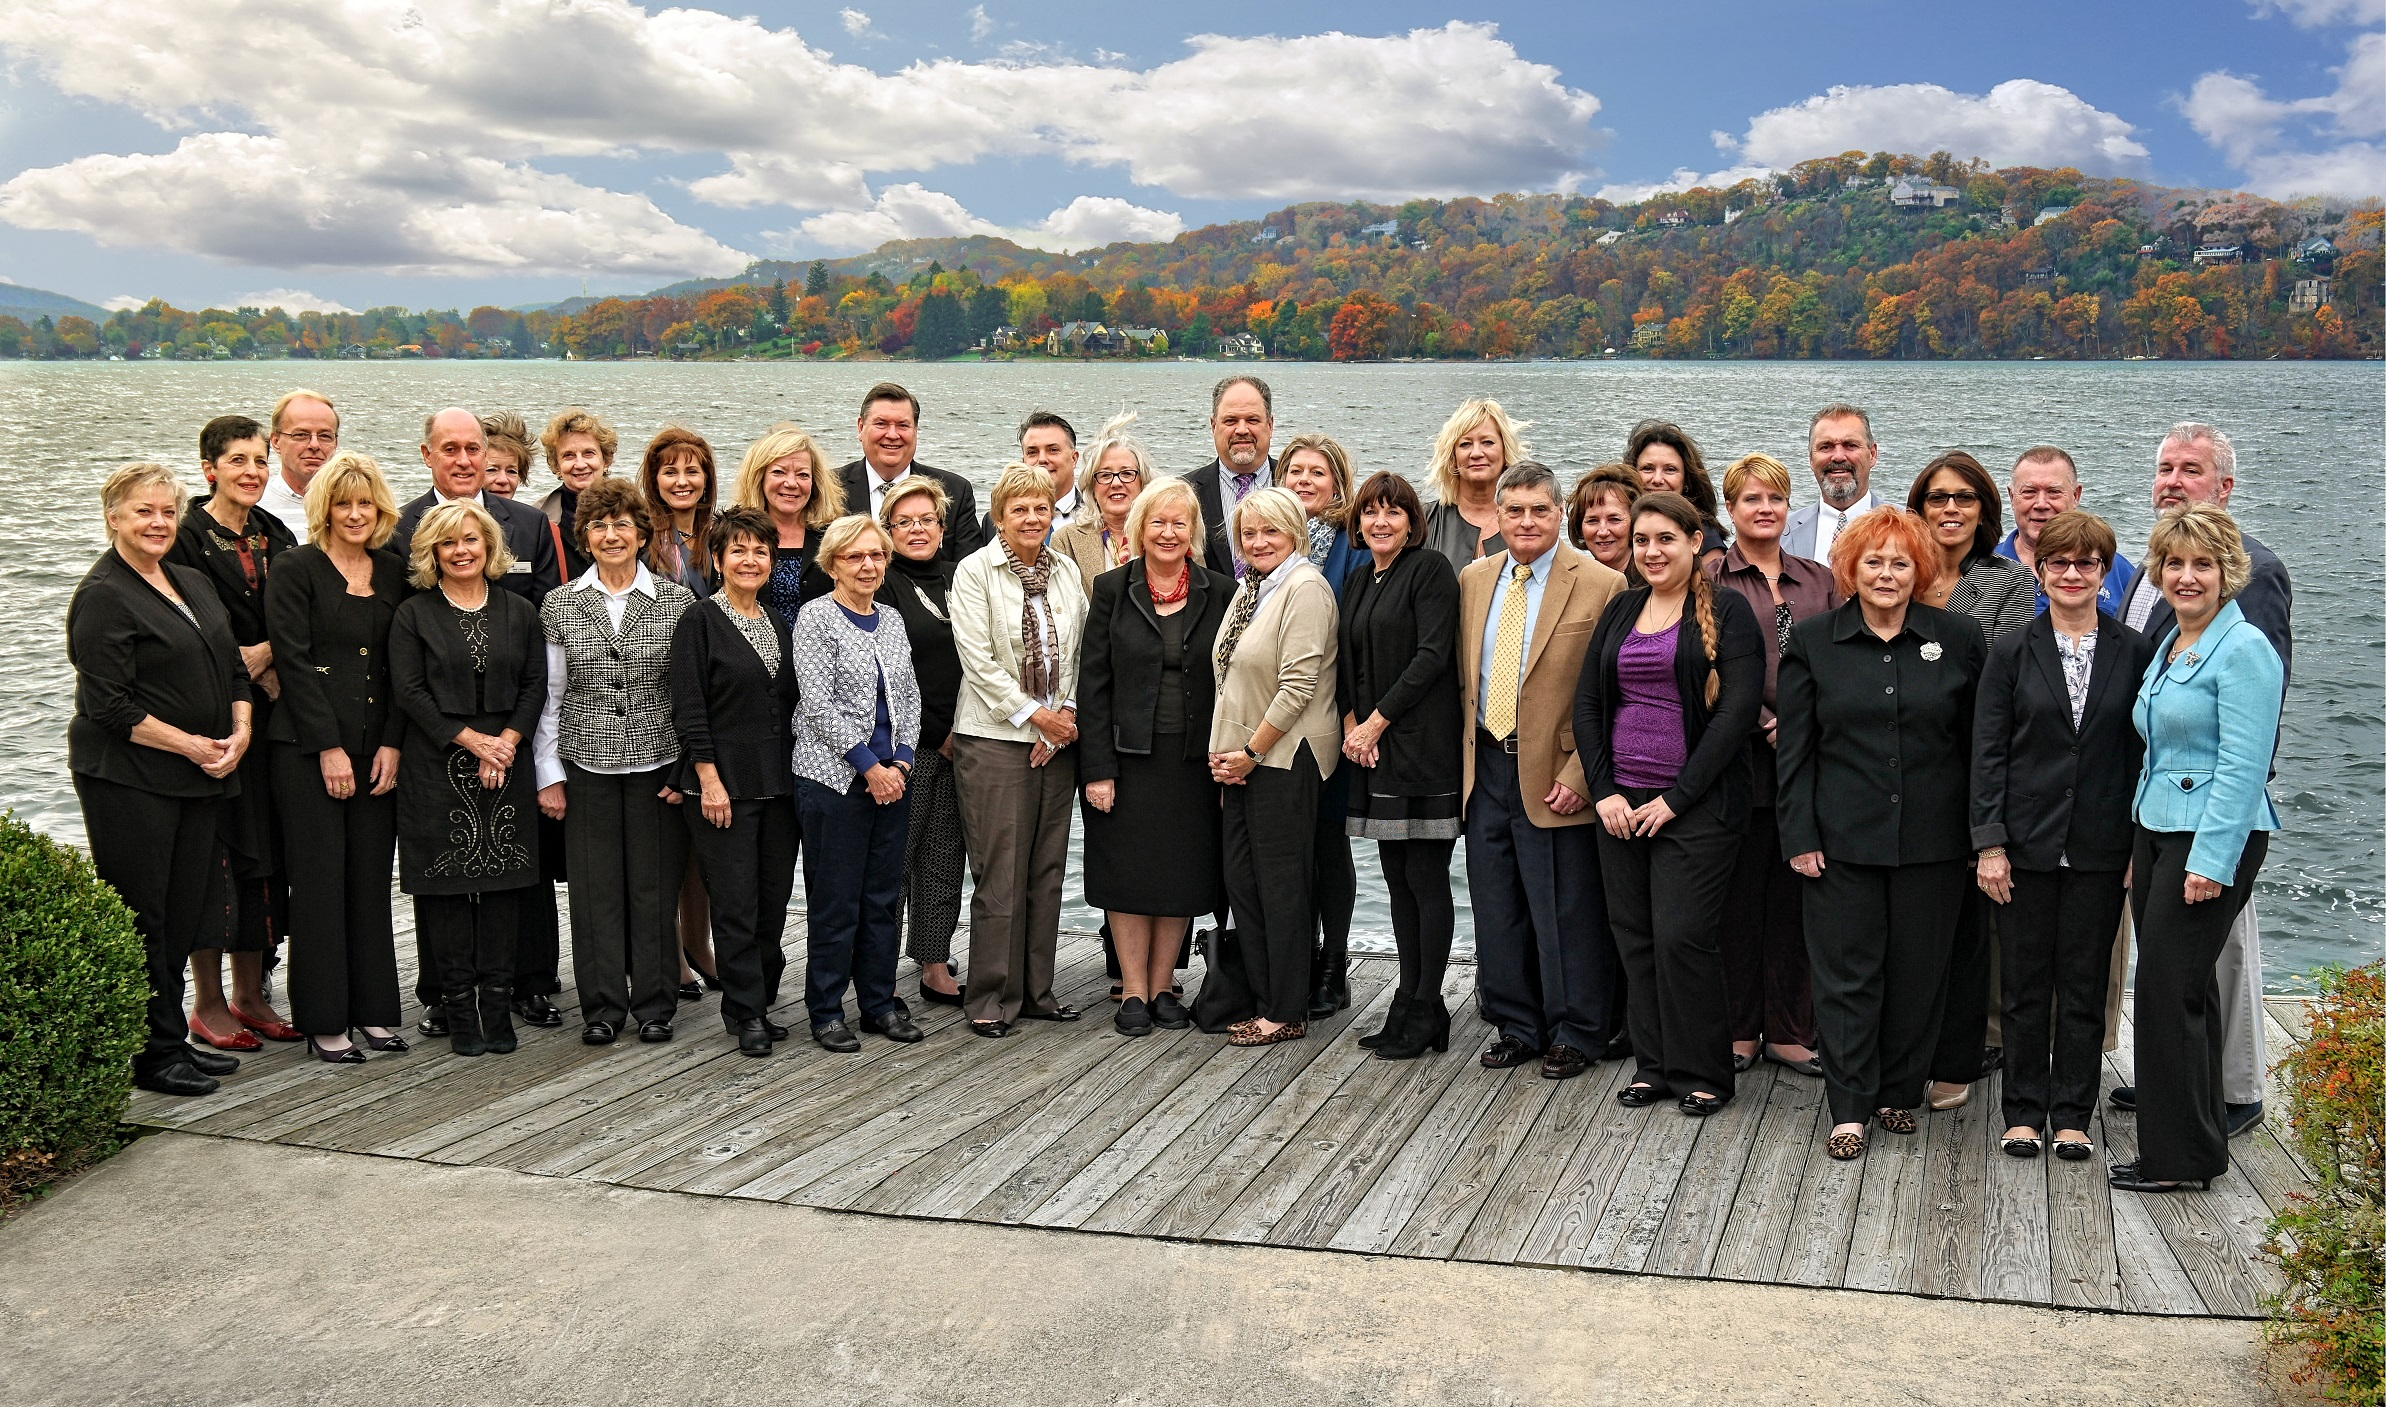 corporate group photo for coldwell banker in sparta, NJ